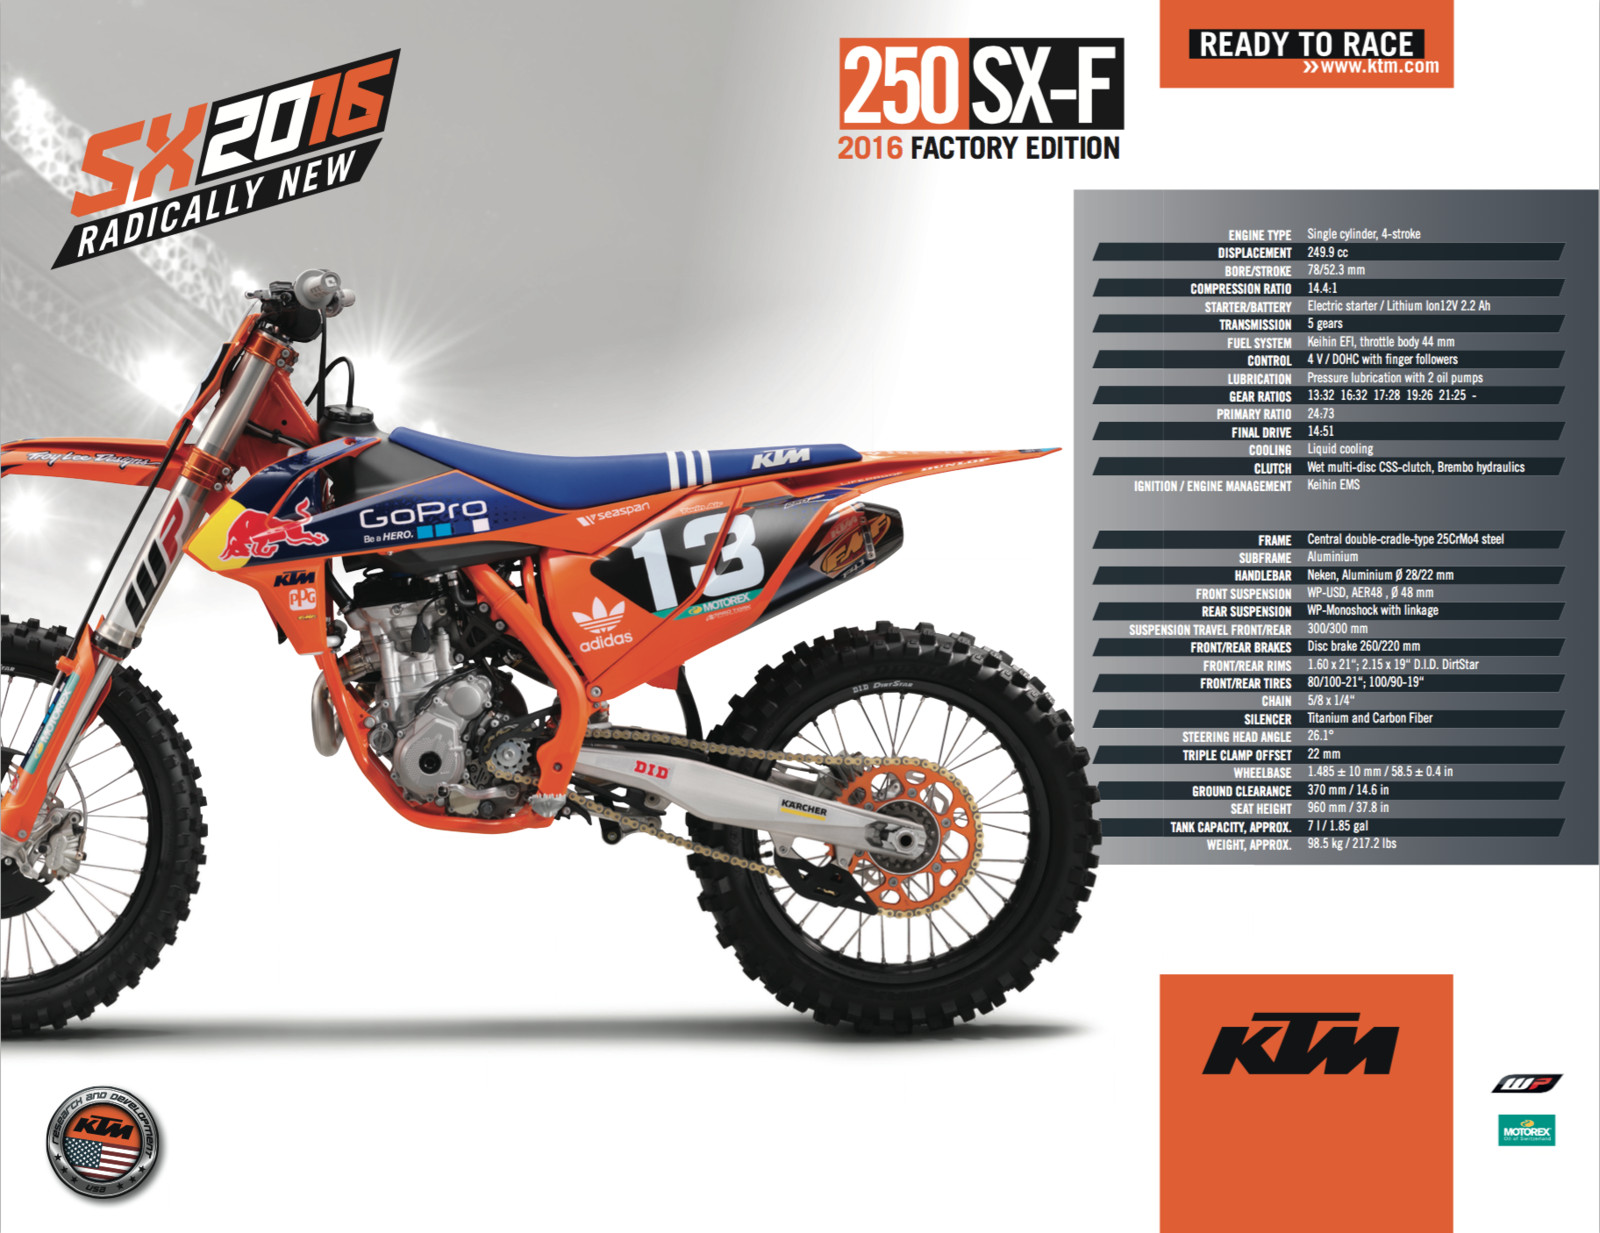 Ktm Sx 150 2015 Repair Manual